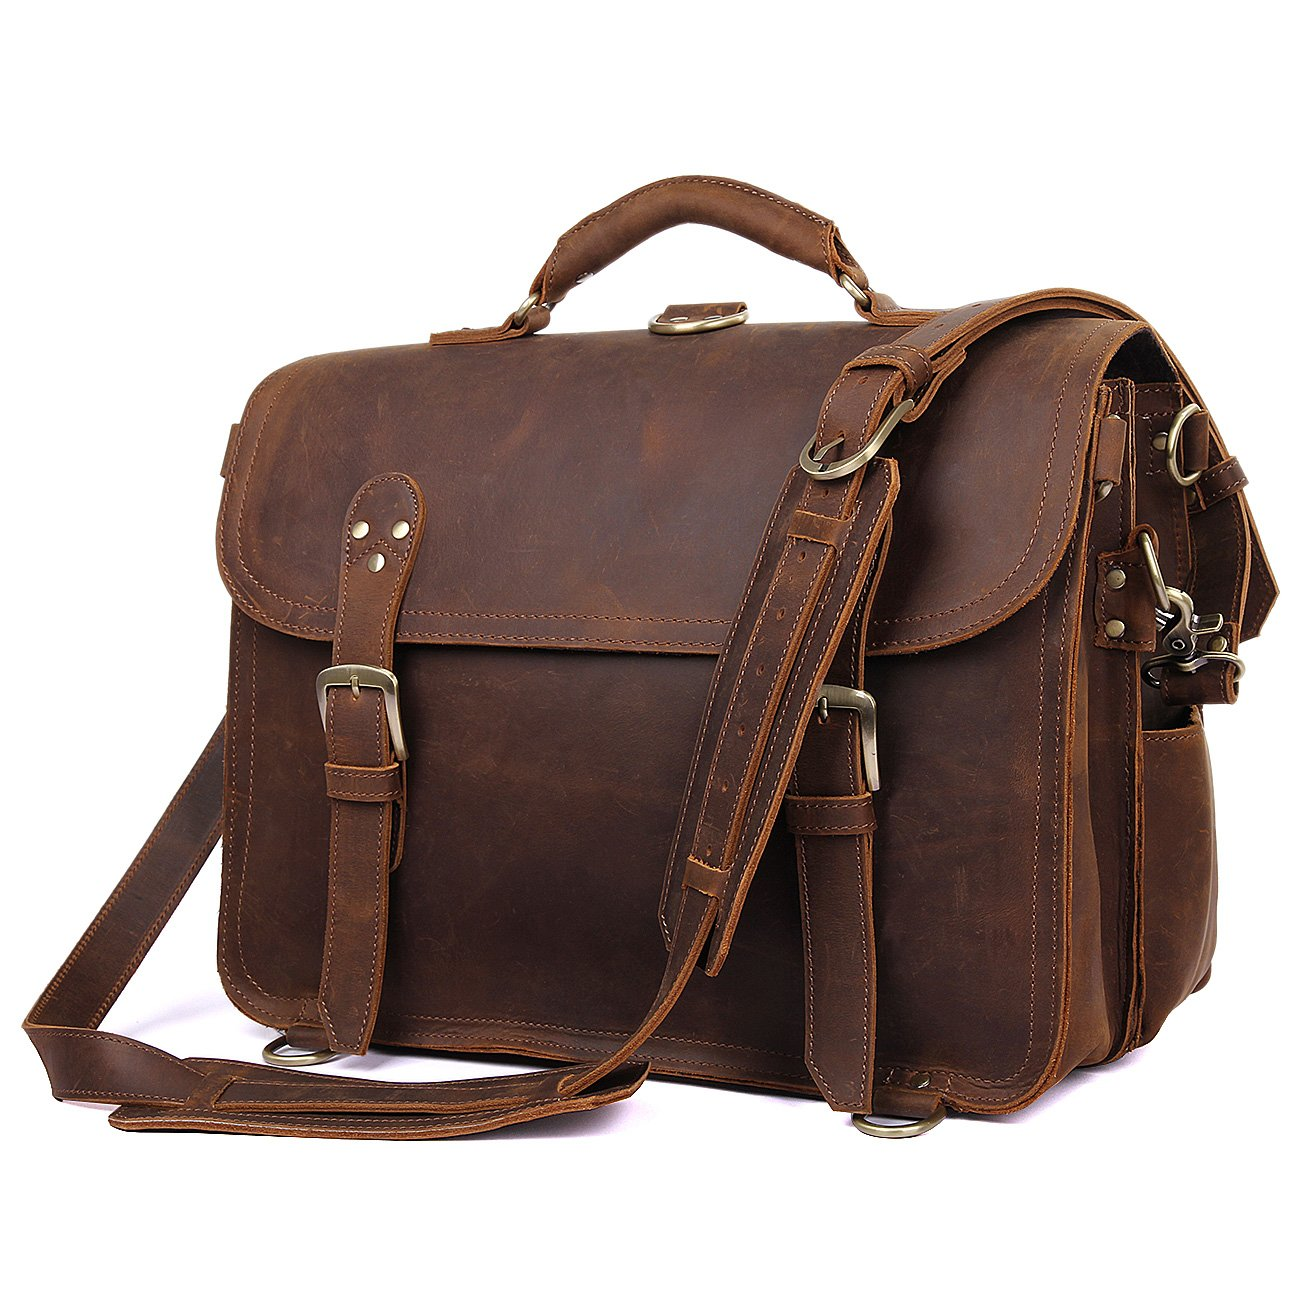 Texbo Men's Thick Cowhide Leather Messenger Bag, 16.5'' Laptop Briefcase by Texbo (Image #1)